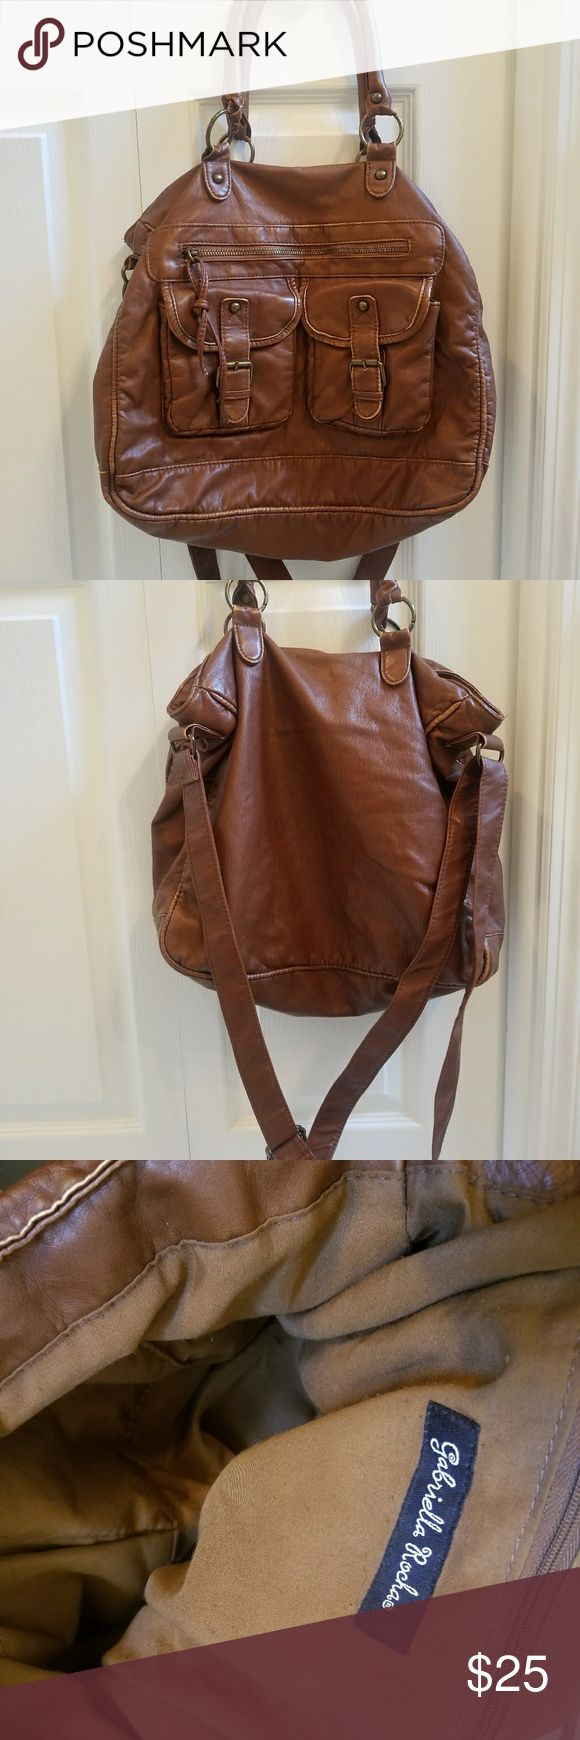 Gabriella Rocha bag Used a couple times. Clean, great condition. Gabriella Rocha Bags